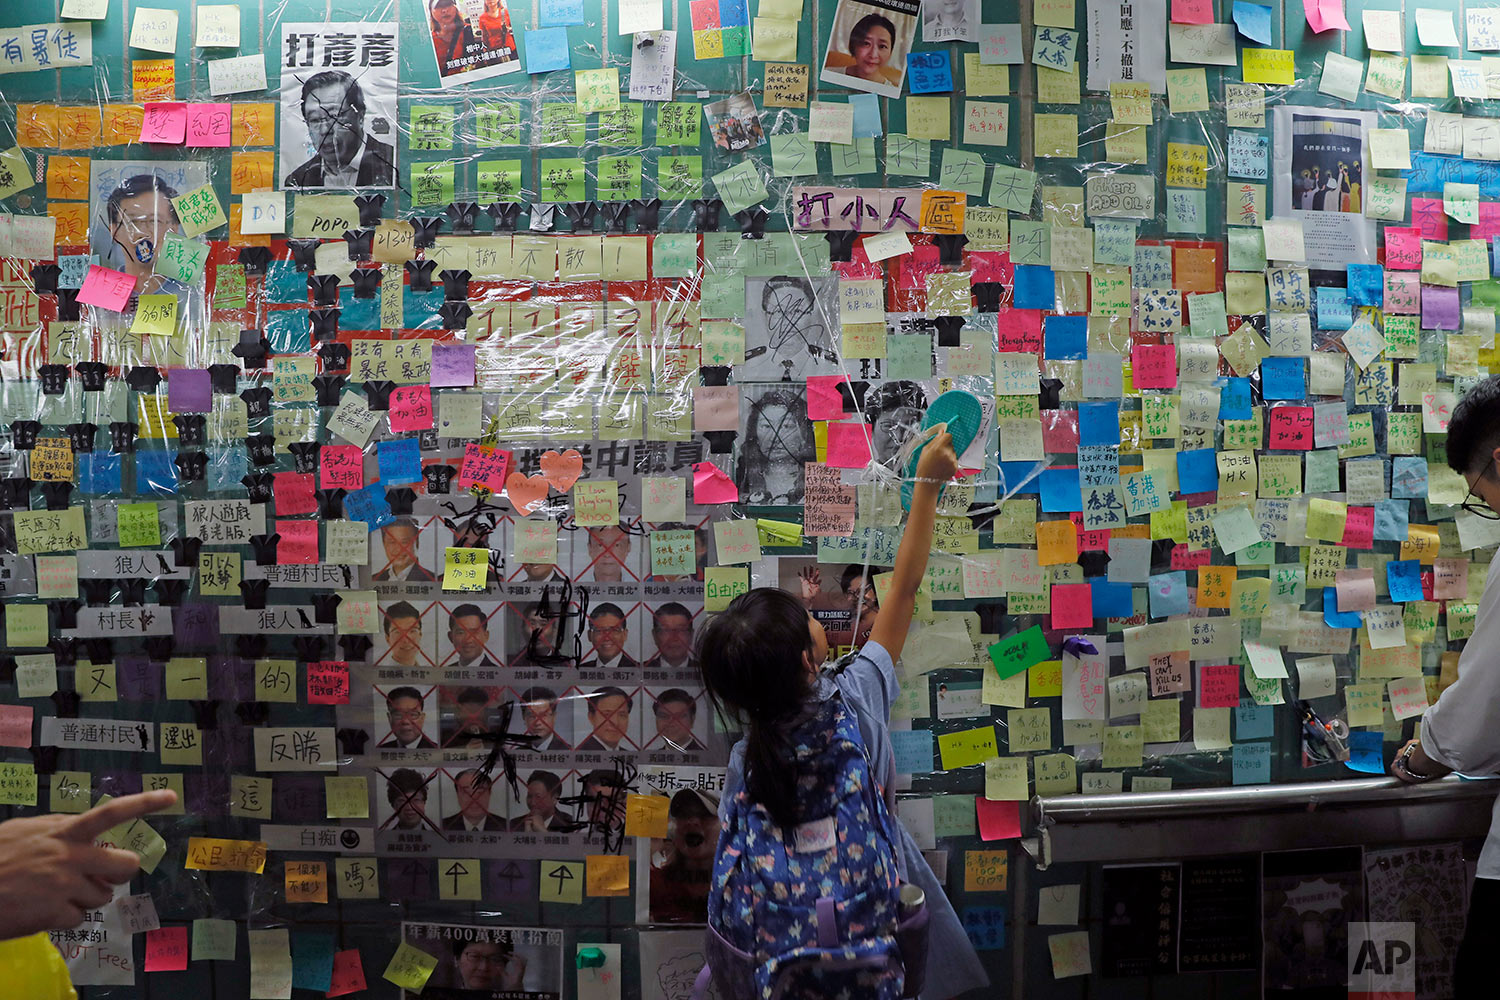 A child reaches out to post-it notes on the city's version of the Lennon Wall in Hong Kong, July 12, 2019. (AP Photo/Kin Cheung)